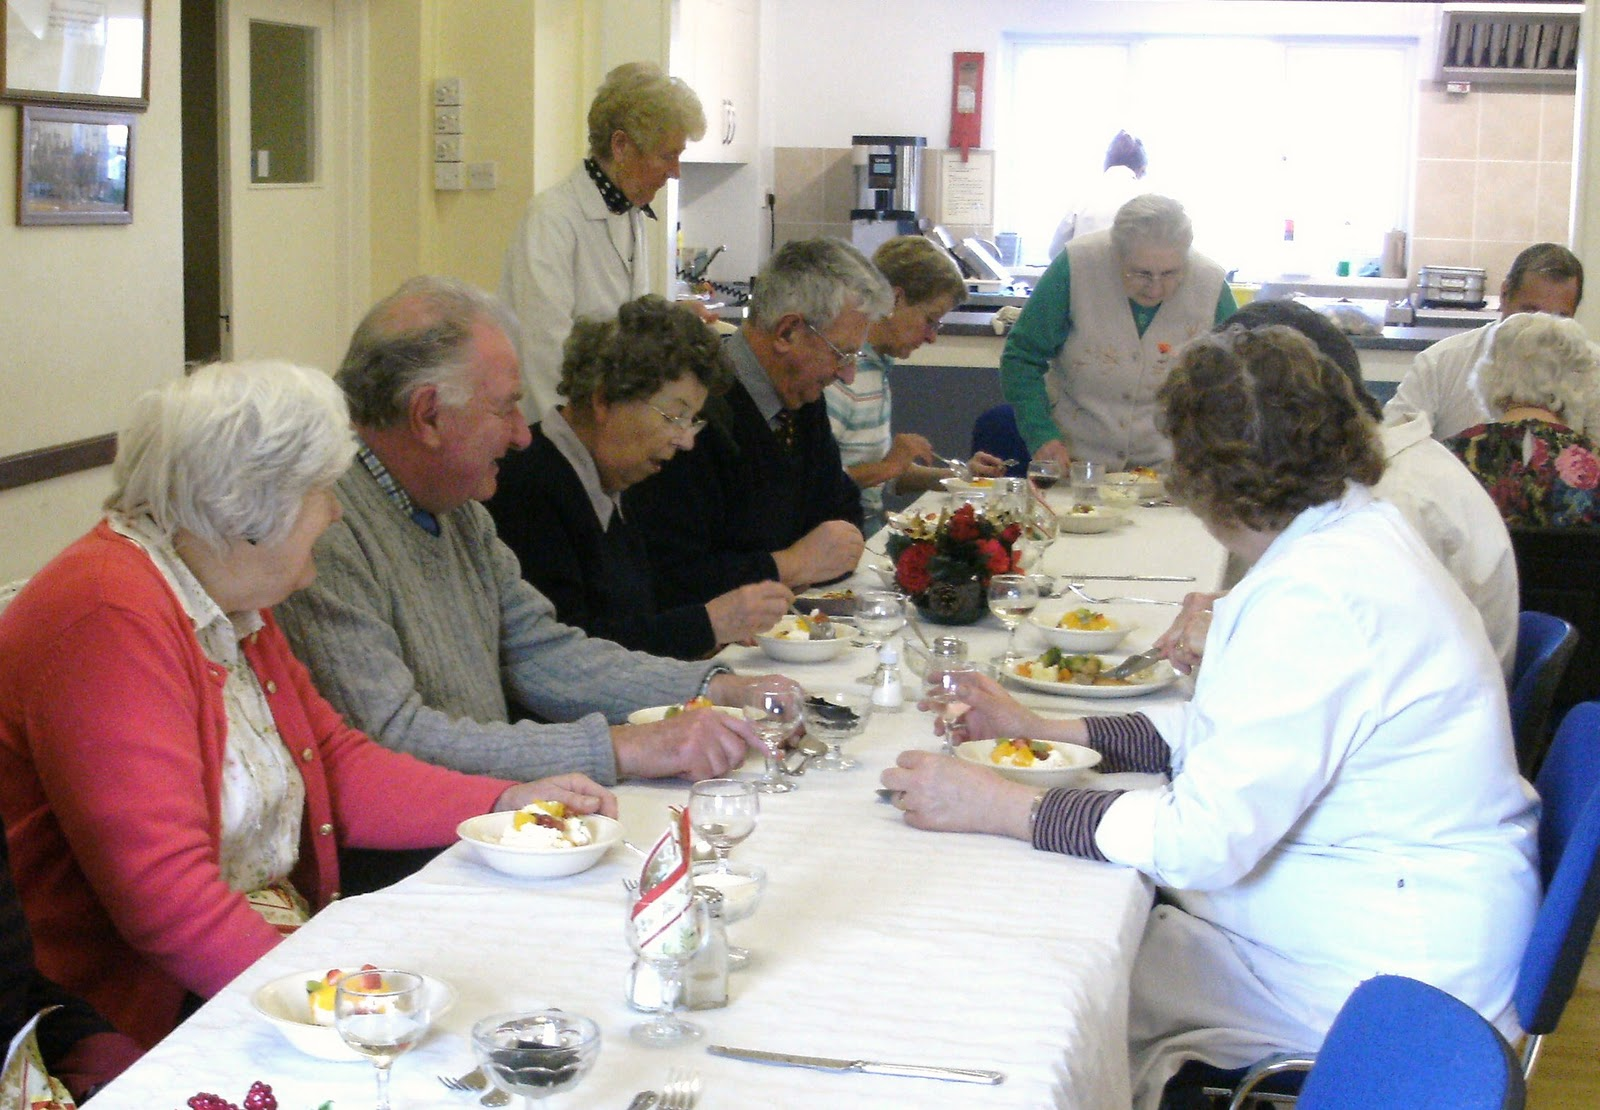 luncheon+club+january+meal+036.JPG